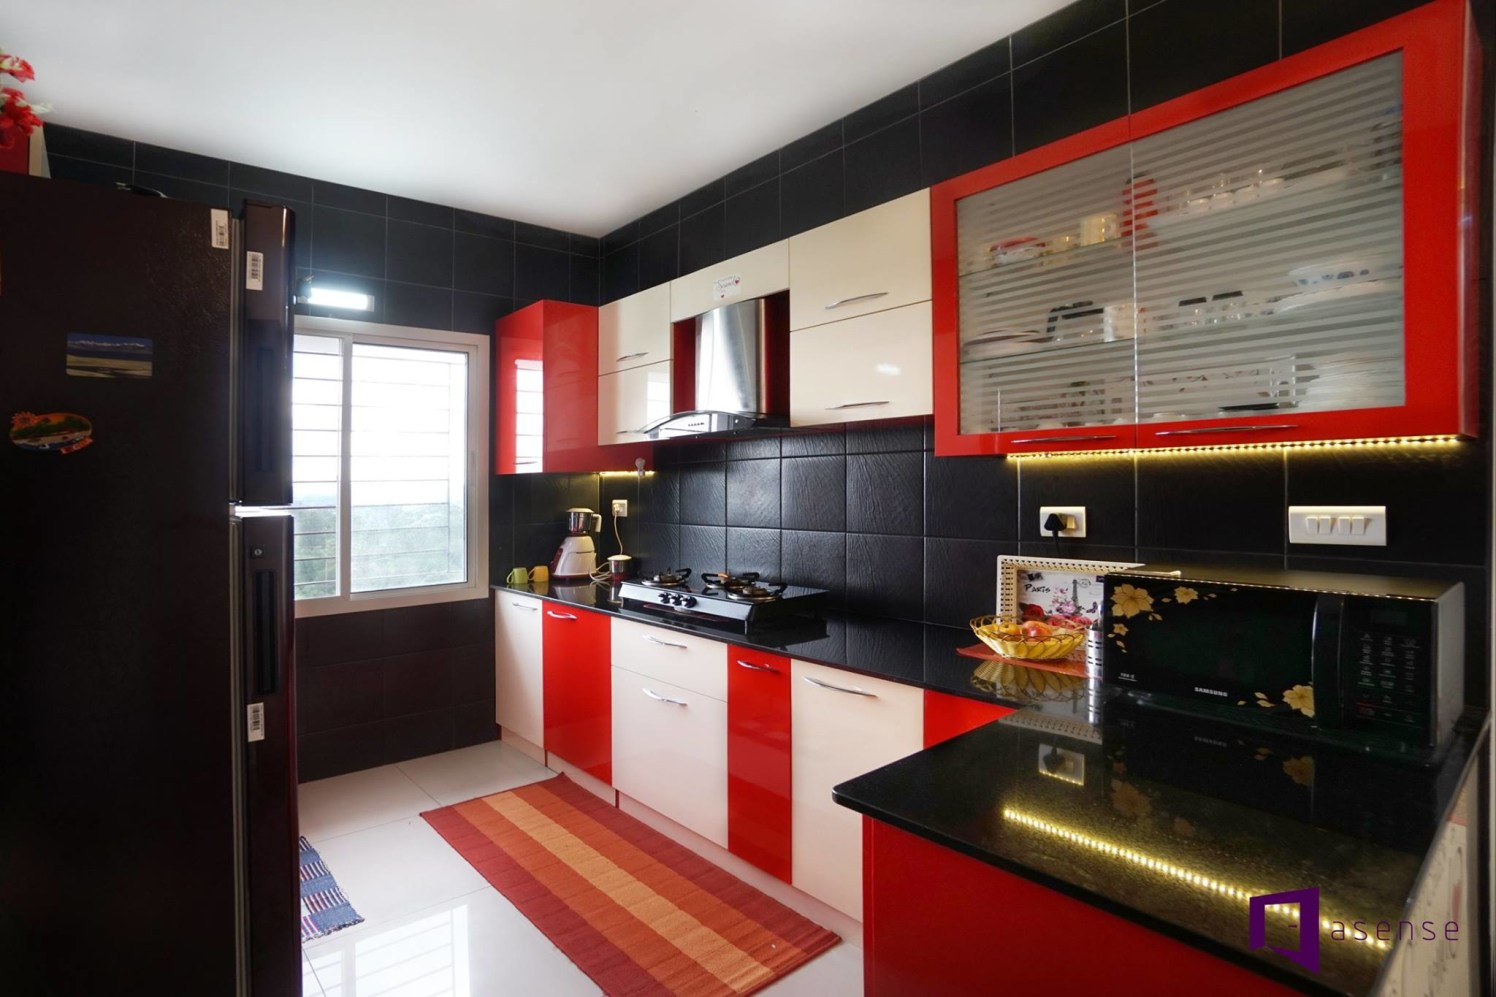 Red And White Themed Modular Kitchen with Black Marbles by Snigdha Ghosh Modular-kitchen Contemporary | Interior Design Photos & Ideas